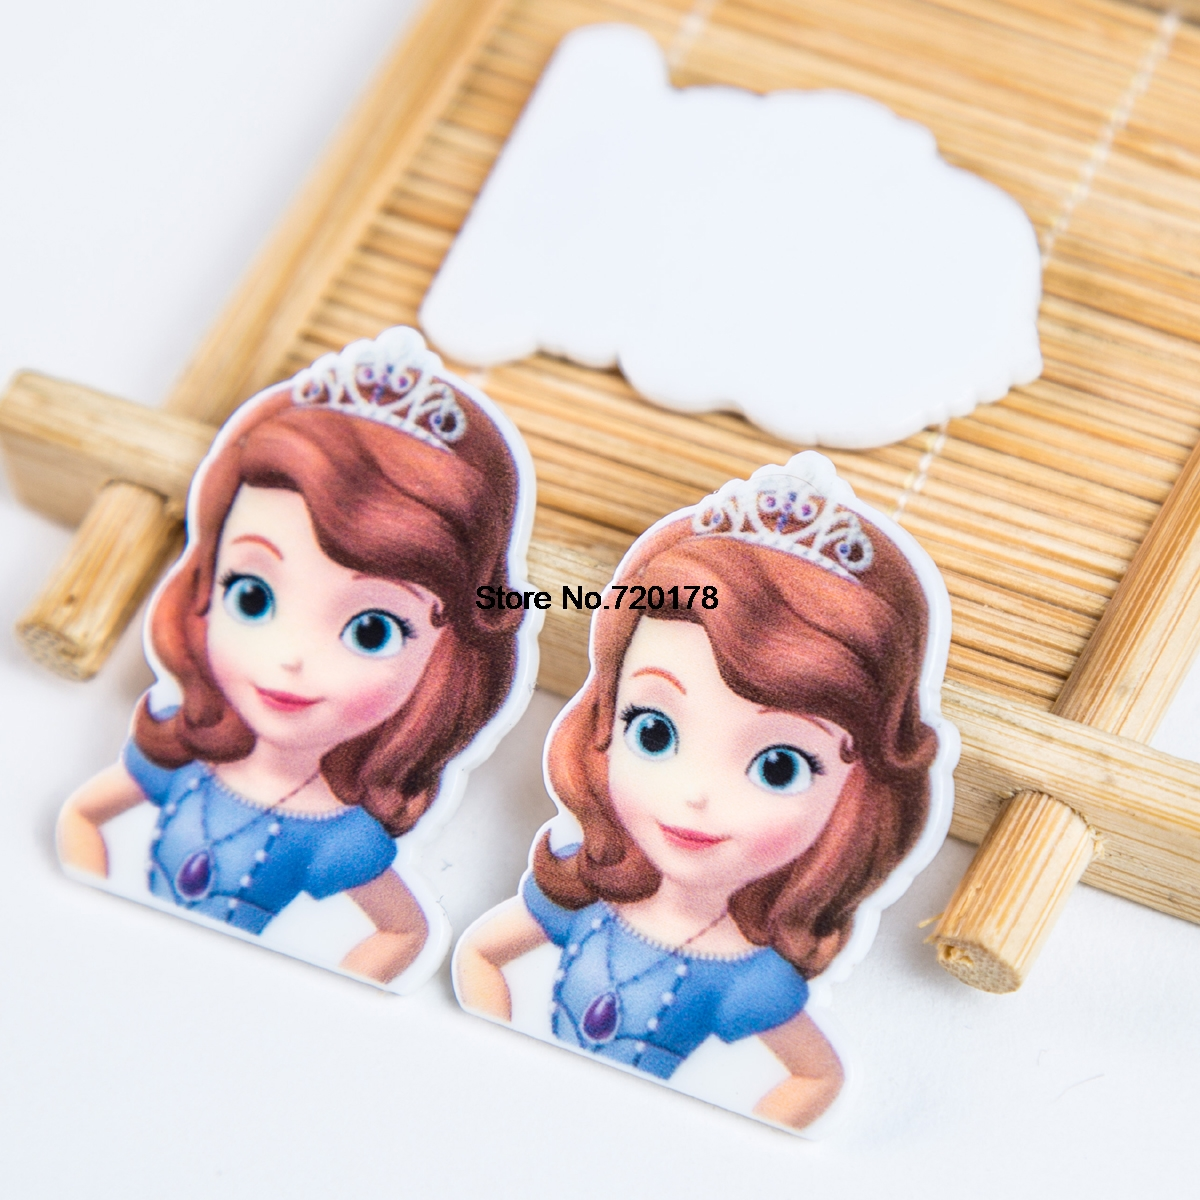 Flatback Printed Resin Cartoon Character Planar Resin For DIY Craft 1.2inch RET1260F